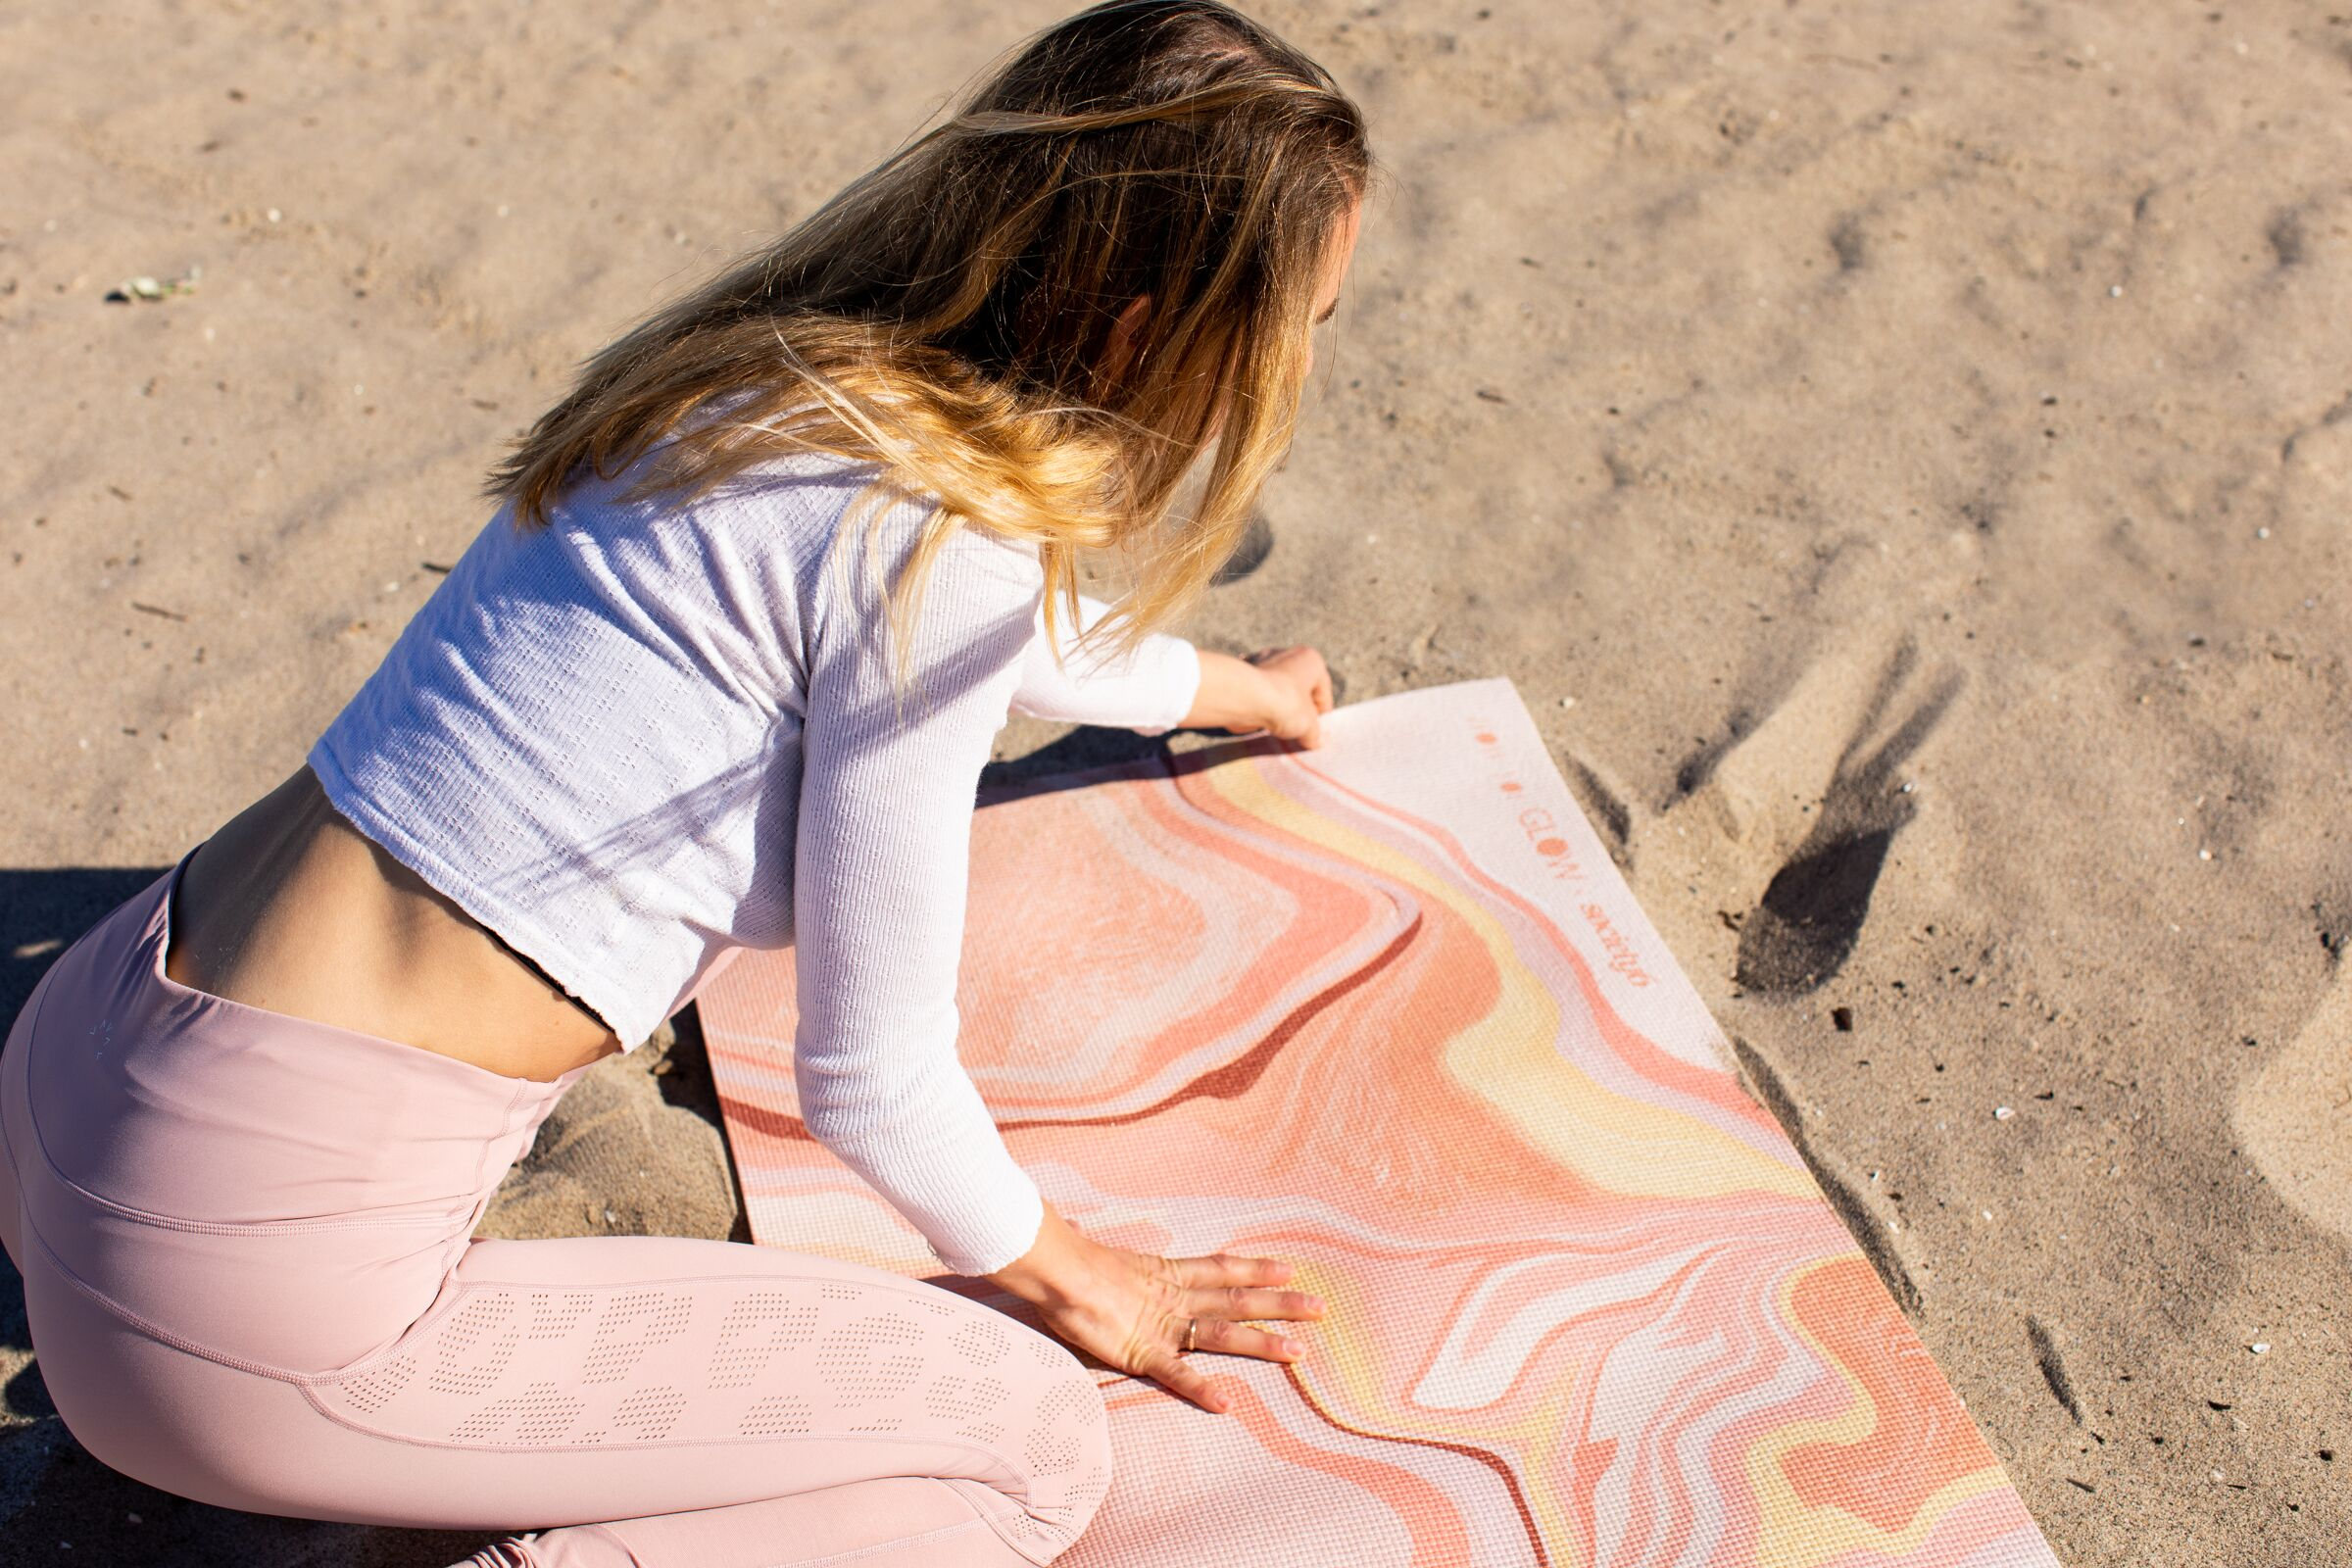 """Society 6: Yoga Mats - """"We partnered with leading lifestyle brand How You Glow to create a pair of exclusive, special edition yoga mats. The mats feature designs by Society6 artist, Alja Horvat, to inspire conscious, health-driven individuals to"""